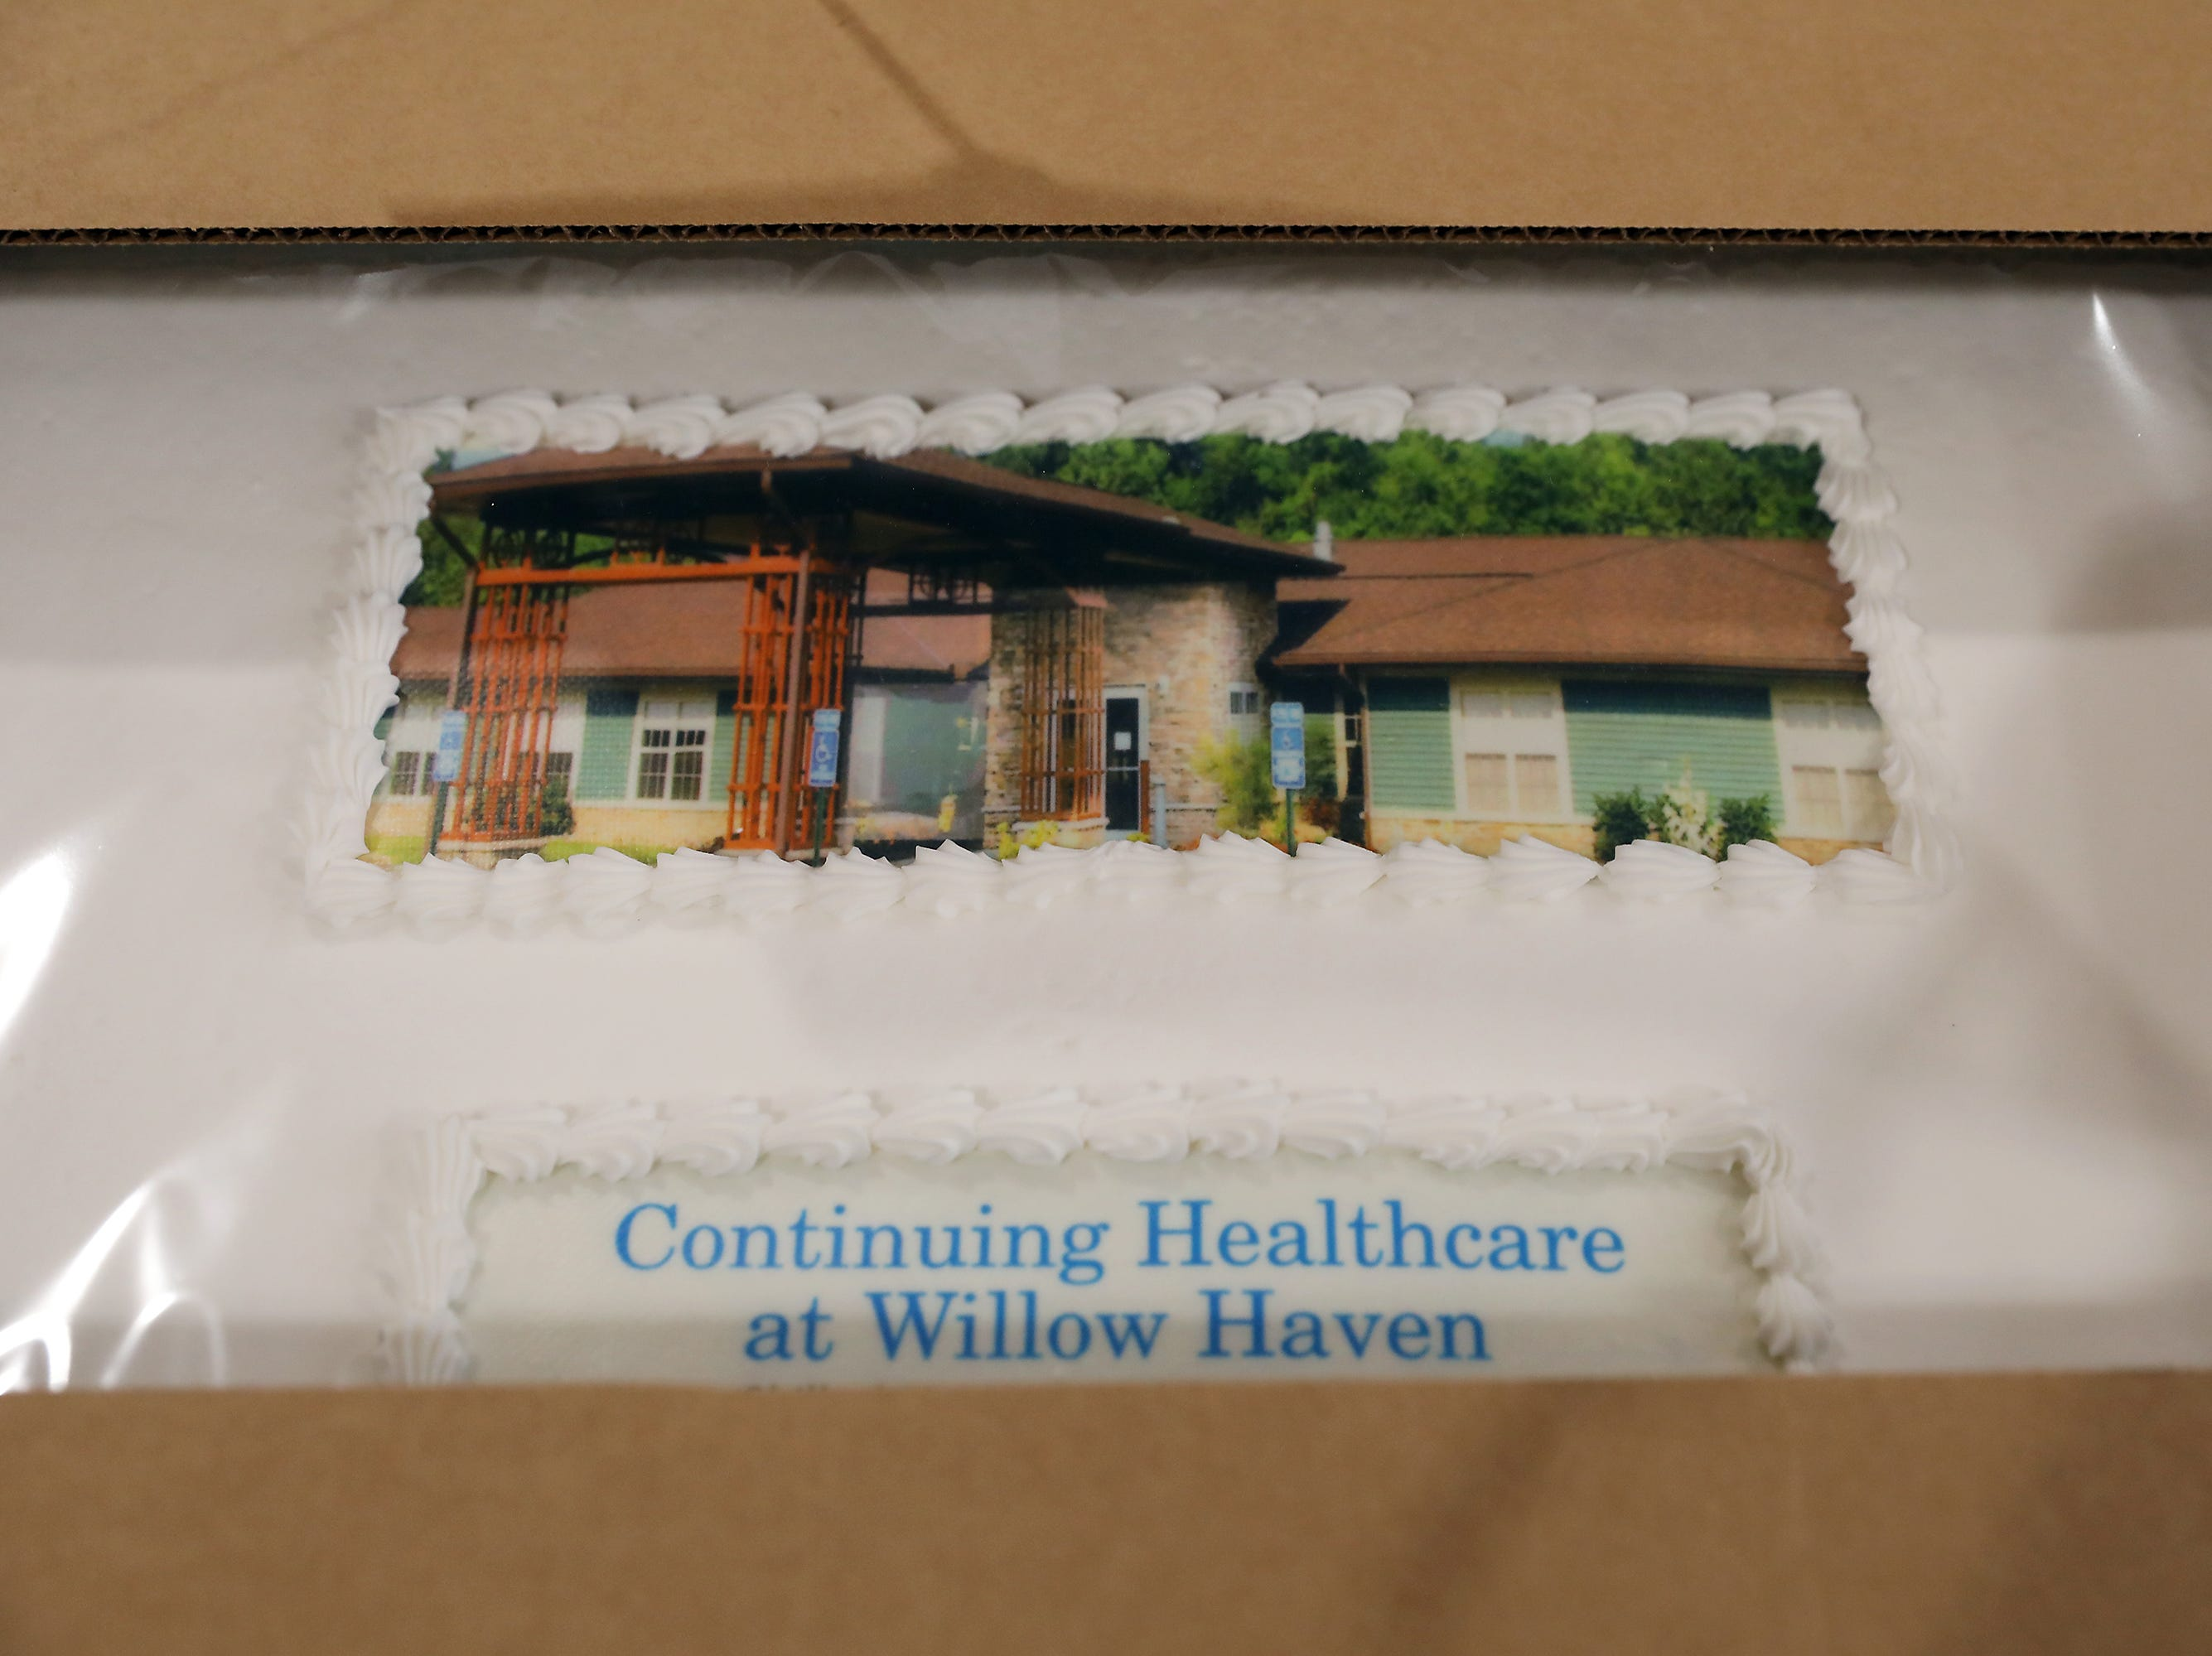 3:15 P.M. Friday cake 353 Willow Haven Skilled Nursing and Rehabilitation - 1 hour massage, basket of wine, cheese, candles; $150